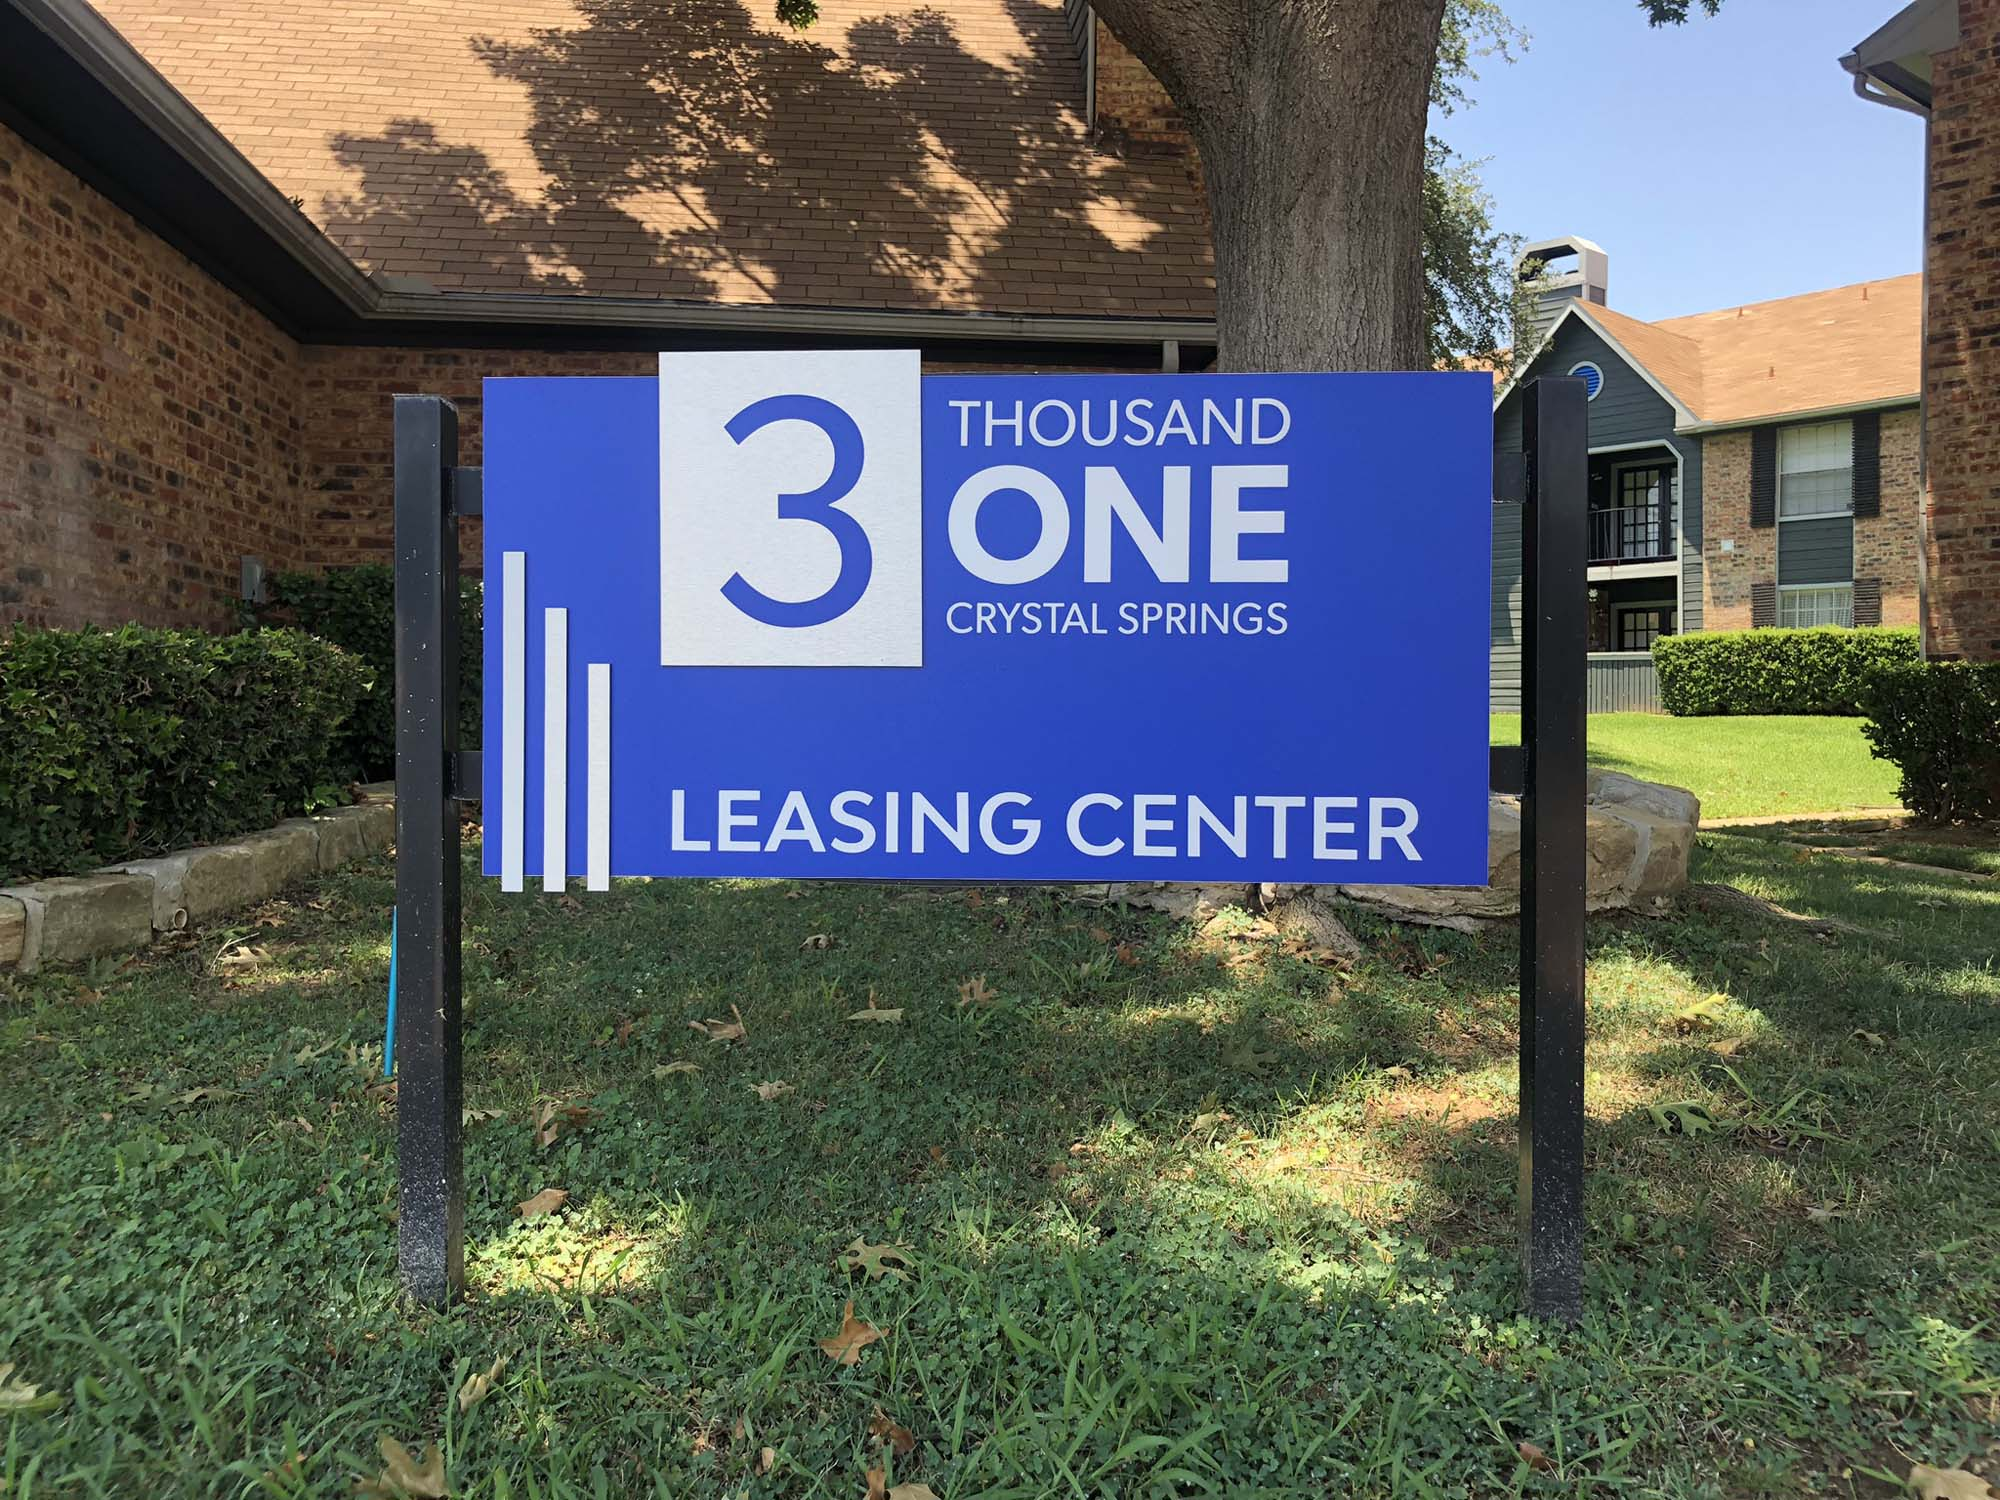 End to End Multifamily Signage Solutions 12